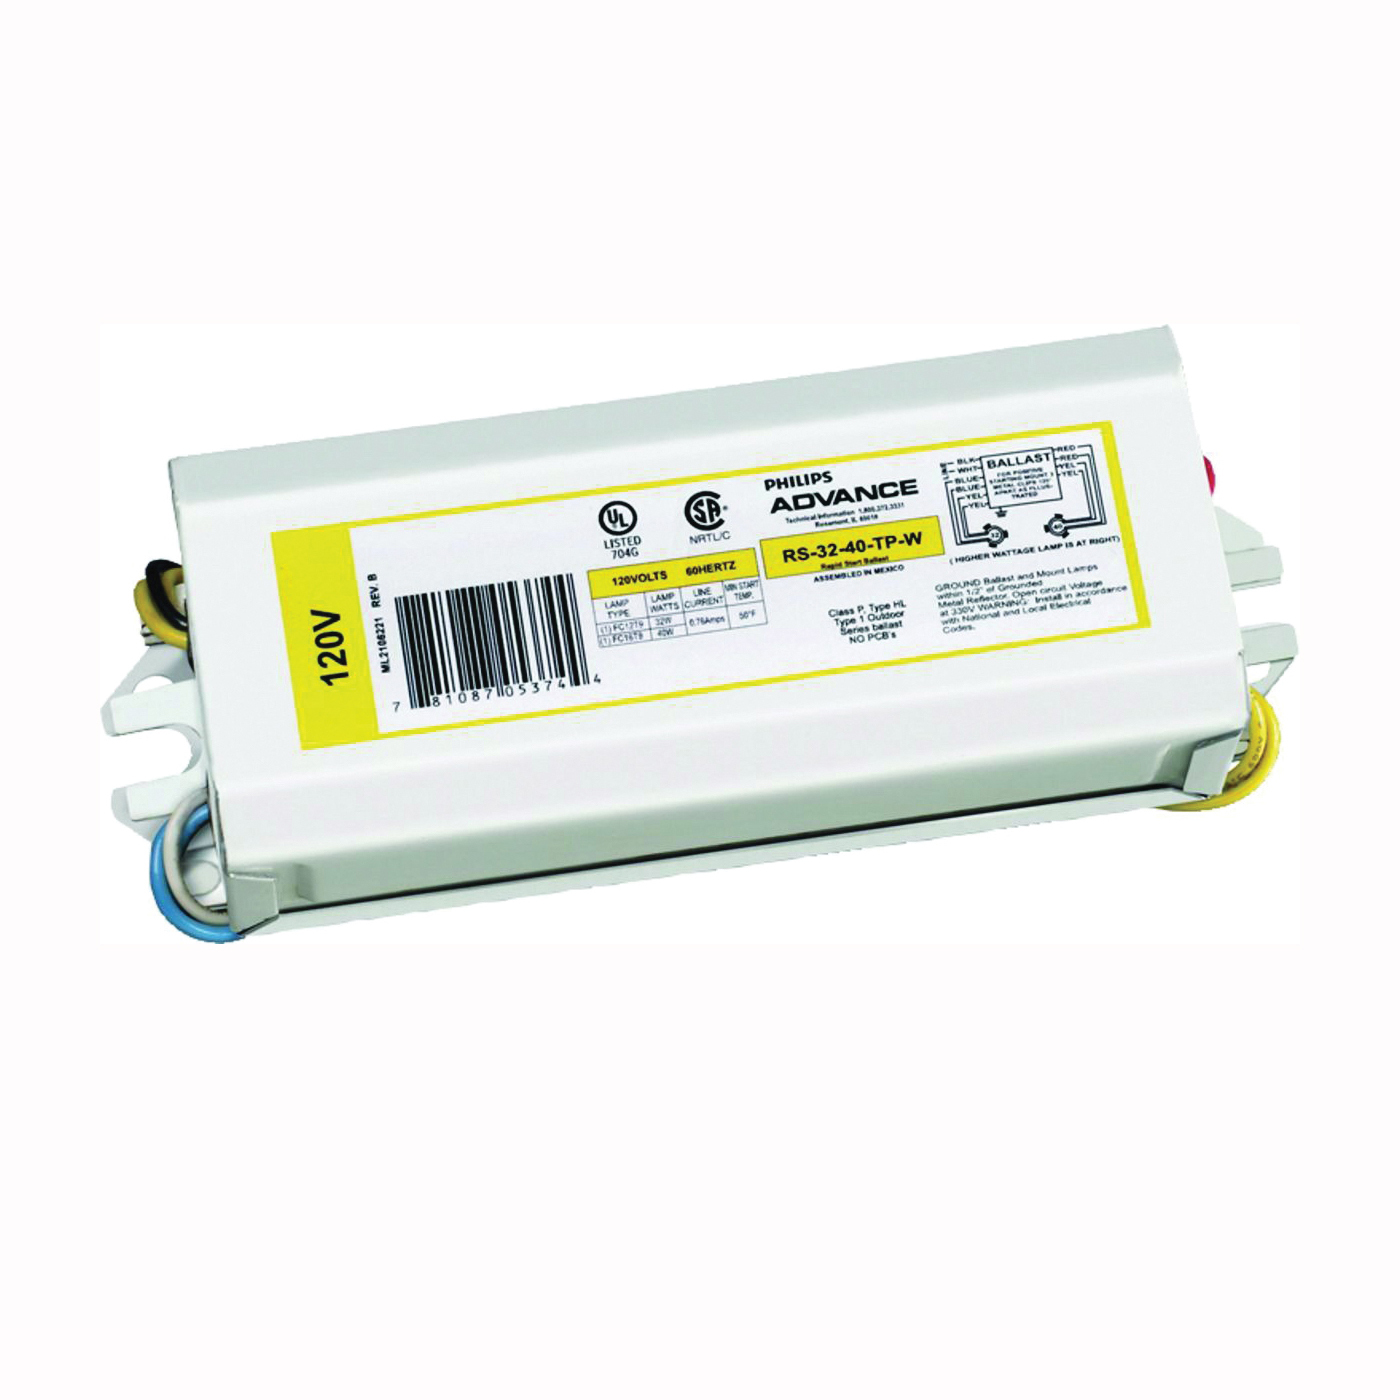 Picture of Philips Advance Magnetic NPF RLCS140TPWI Magnetic Ballast, 120 V, 28 W, 2-Lamp